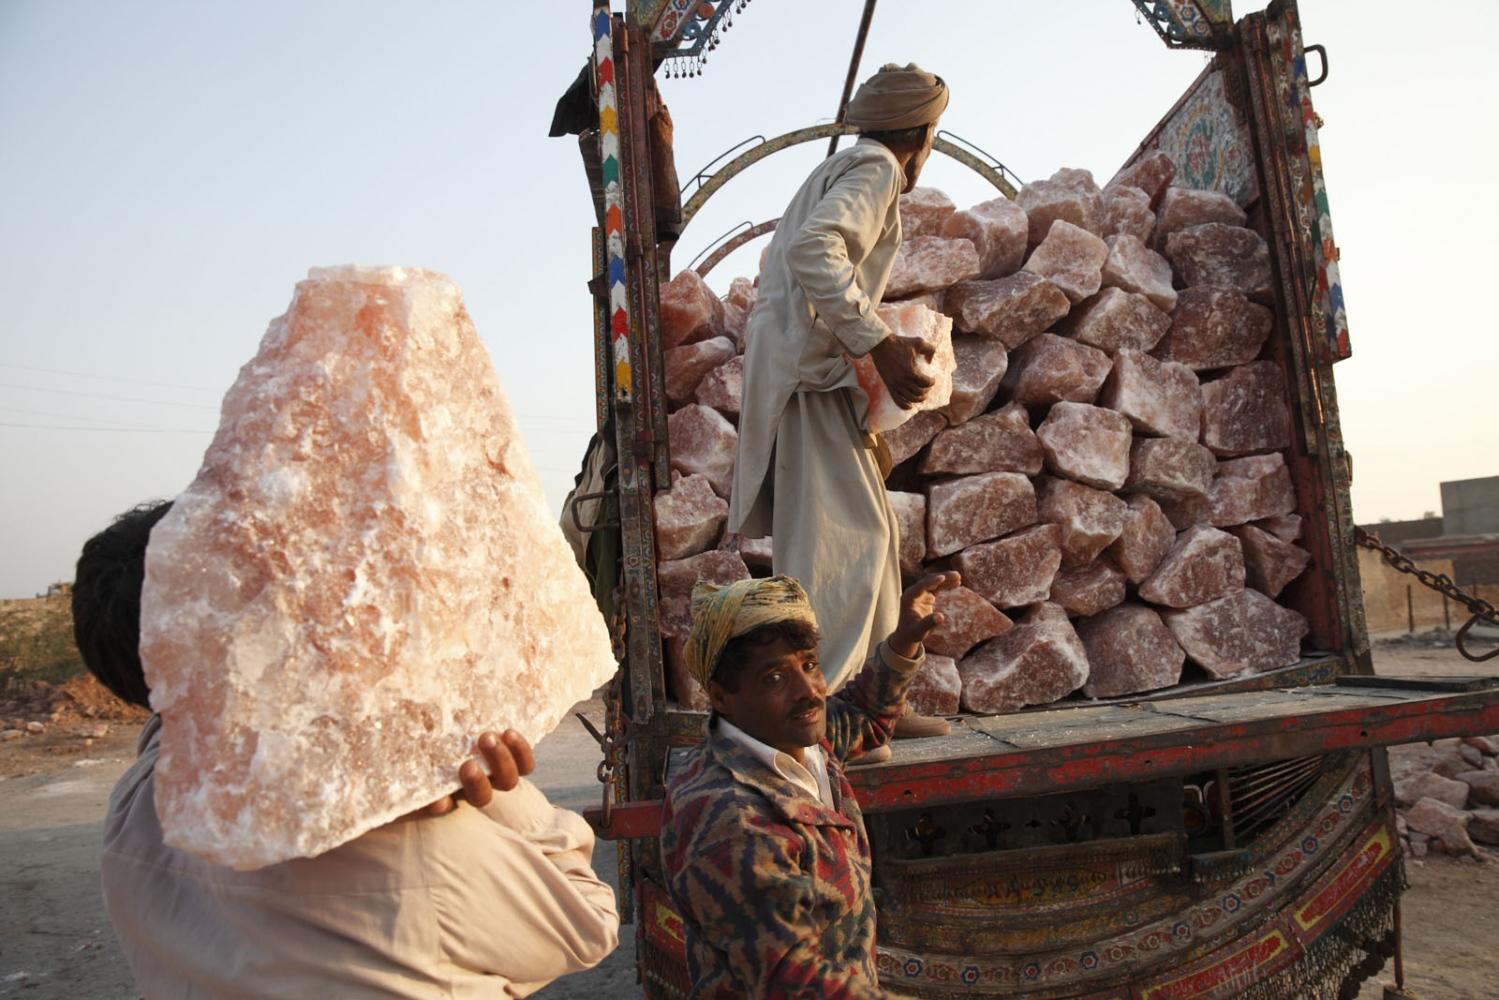 Pakistani salt workers load large pieces of pink rock salt to a waiting truck. Khewra, Punjab.